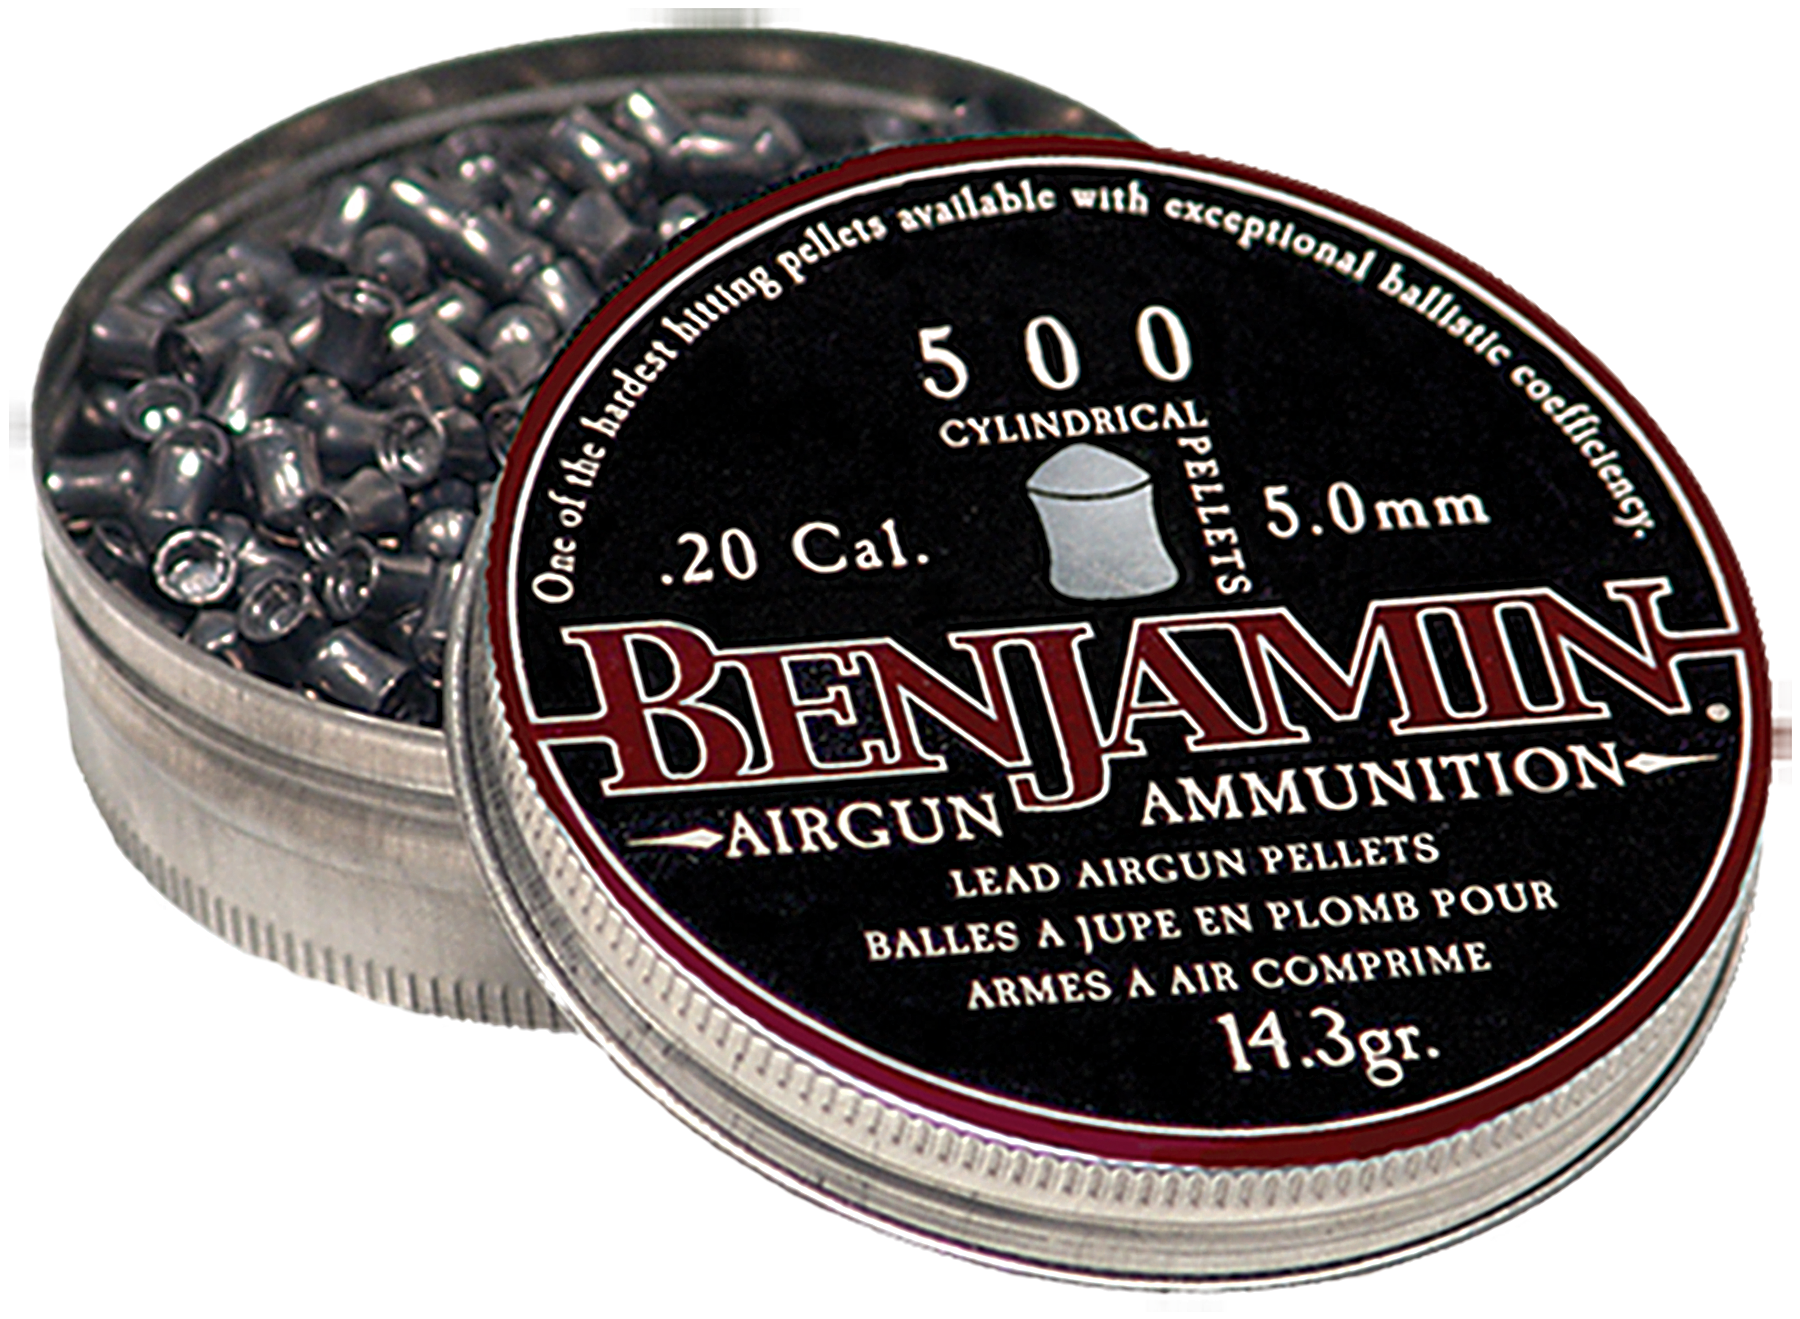 Benjamin P50 .20 (5mm) Cylinder Pellets Lead 500 Count